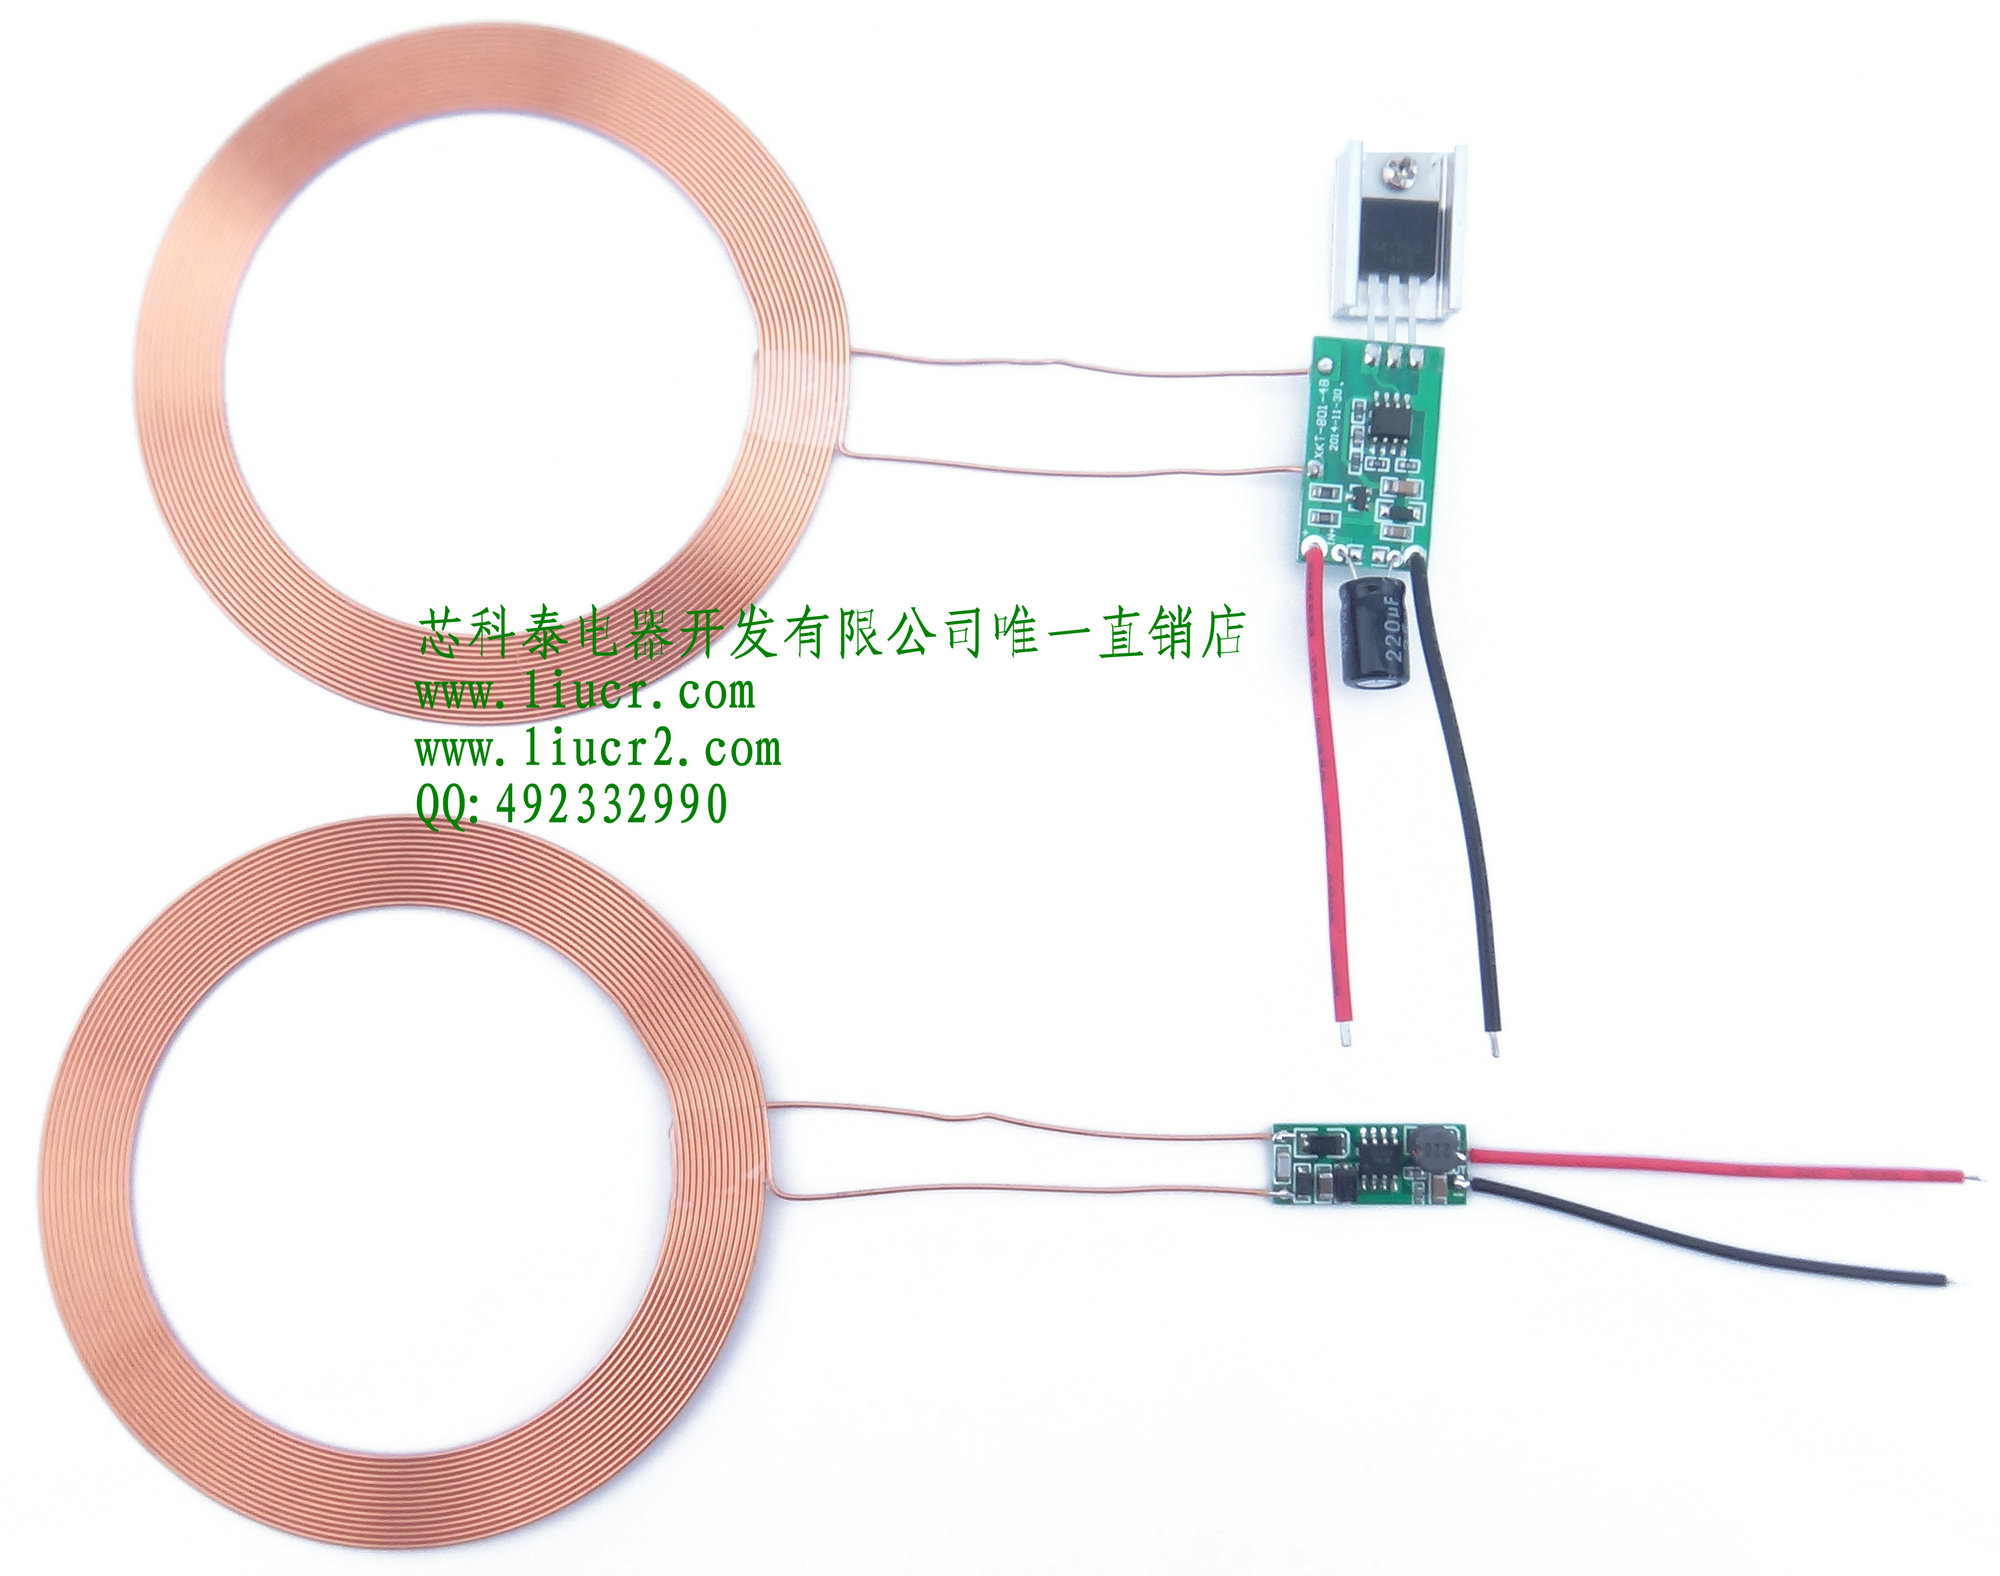 35mm high current output 5V/500mA  long distance wireless charging  supply module transmission module35mm high current output 5V/500mA  long distance wireless charging  supply module transmission module